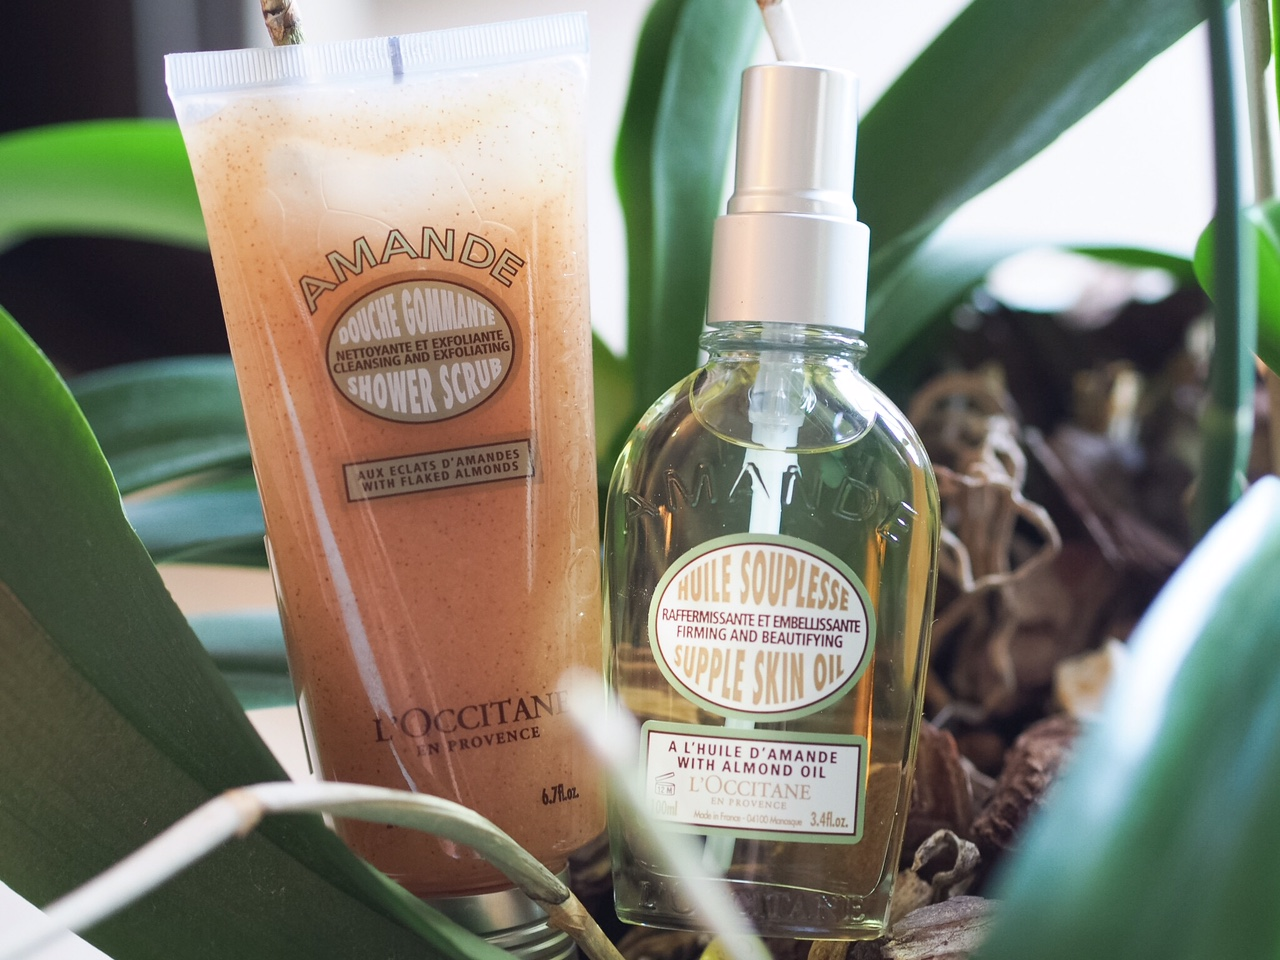 L'Occitane Almond Body Scrub and Supple Skin Oil